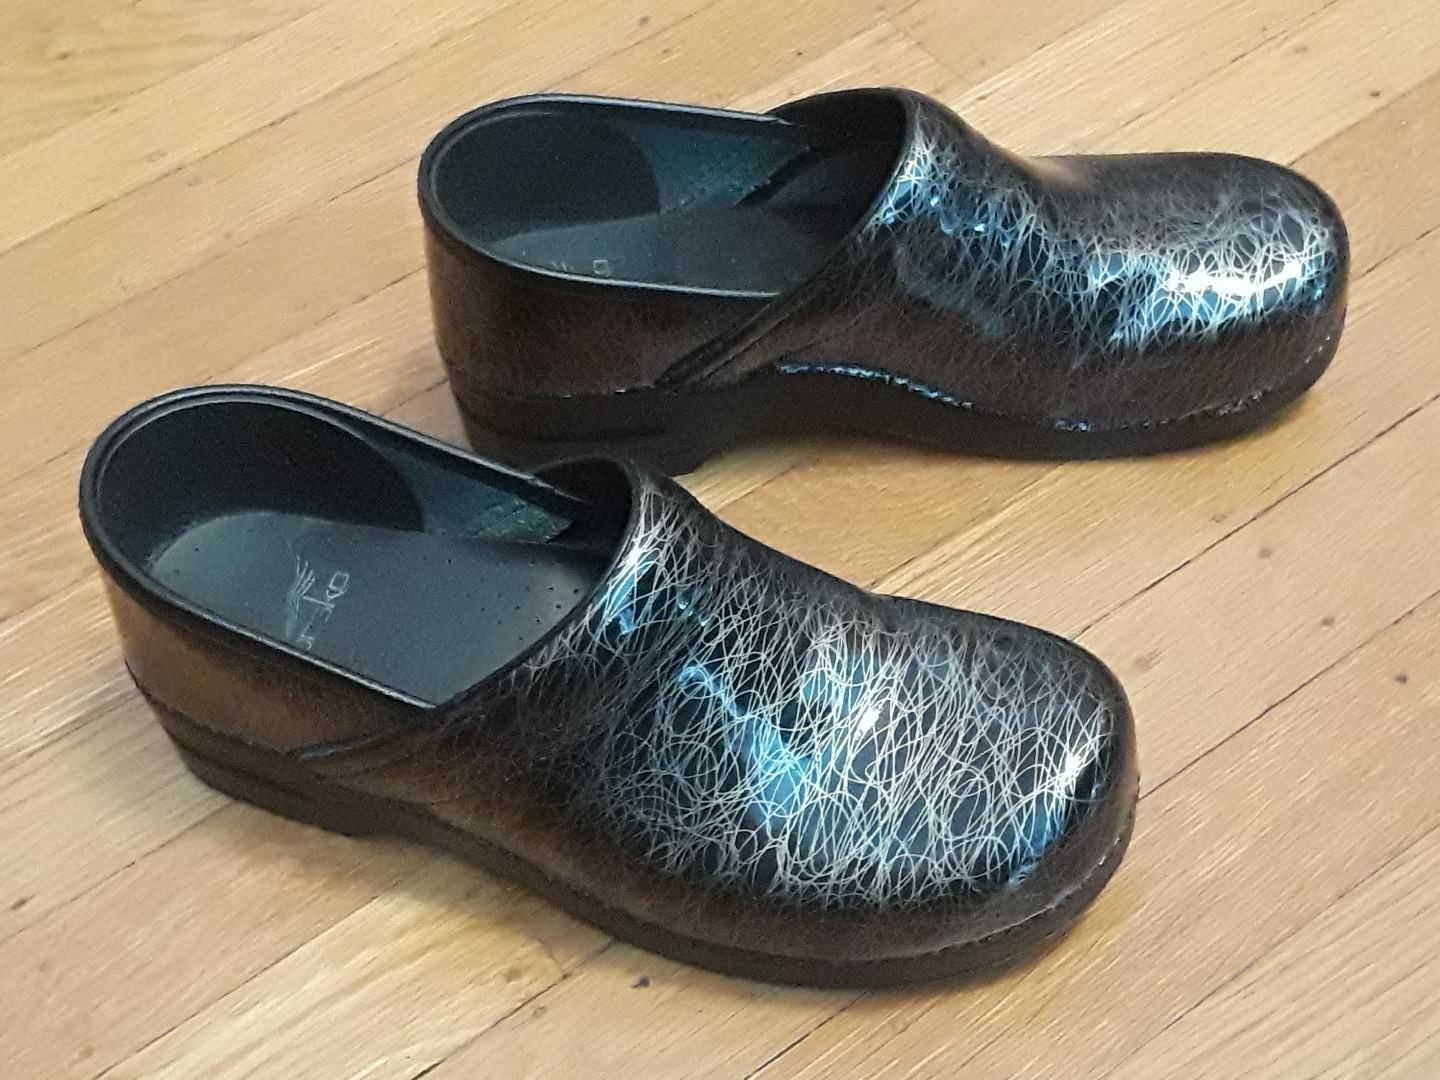 DANSKO DANSKO DANSKO LEATHER SILVER & BLACK PAINT SQUIGGLE PROFESSIONAL CLOGS 42 W 11.5 M 9.5 416212